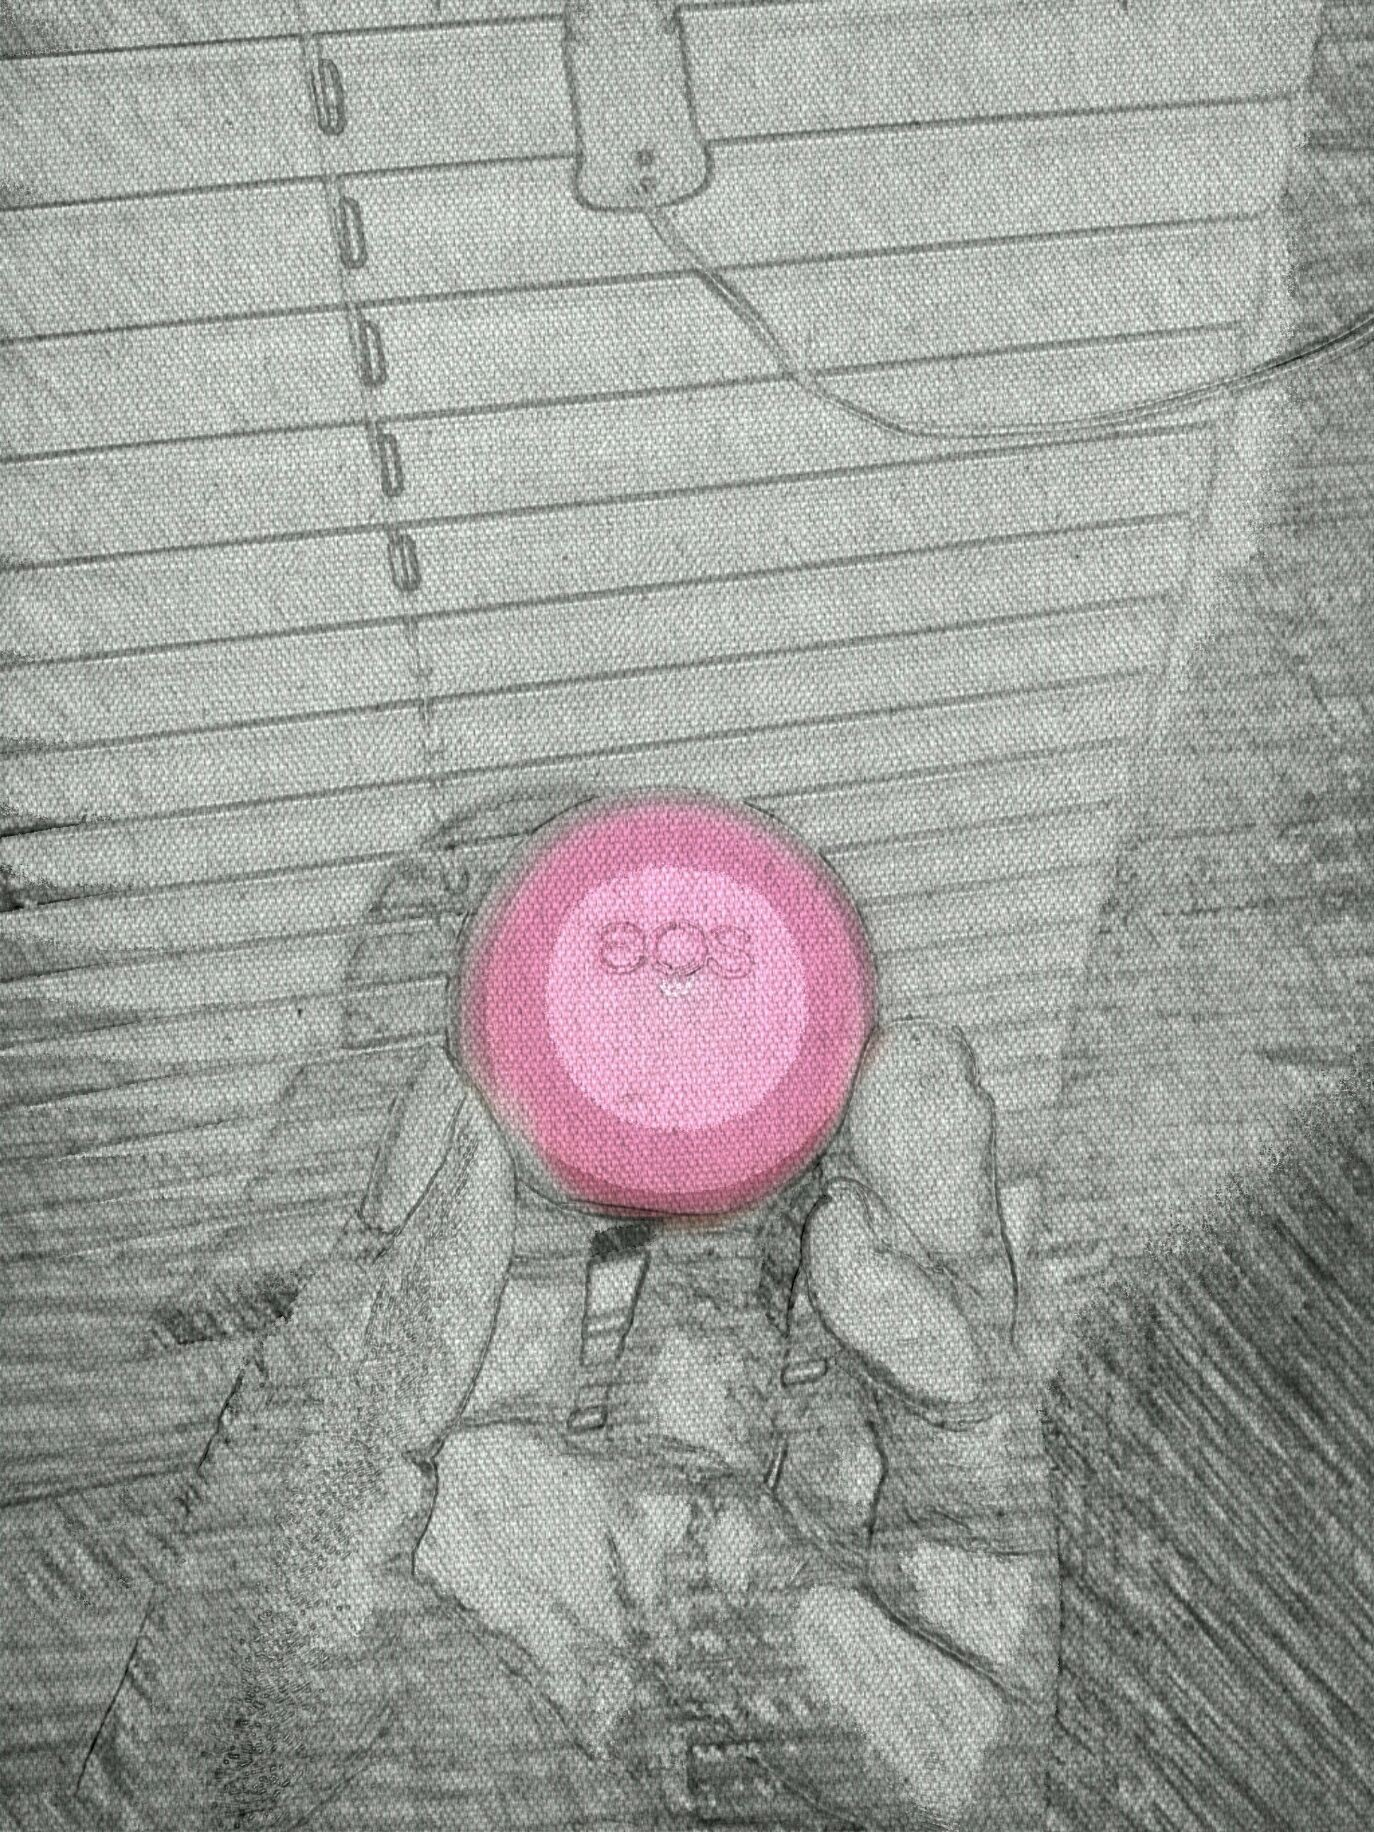 My new chap stick and its working